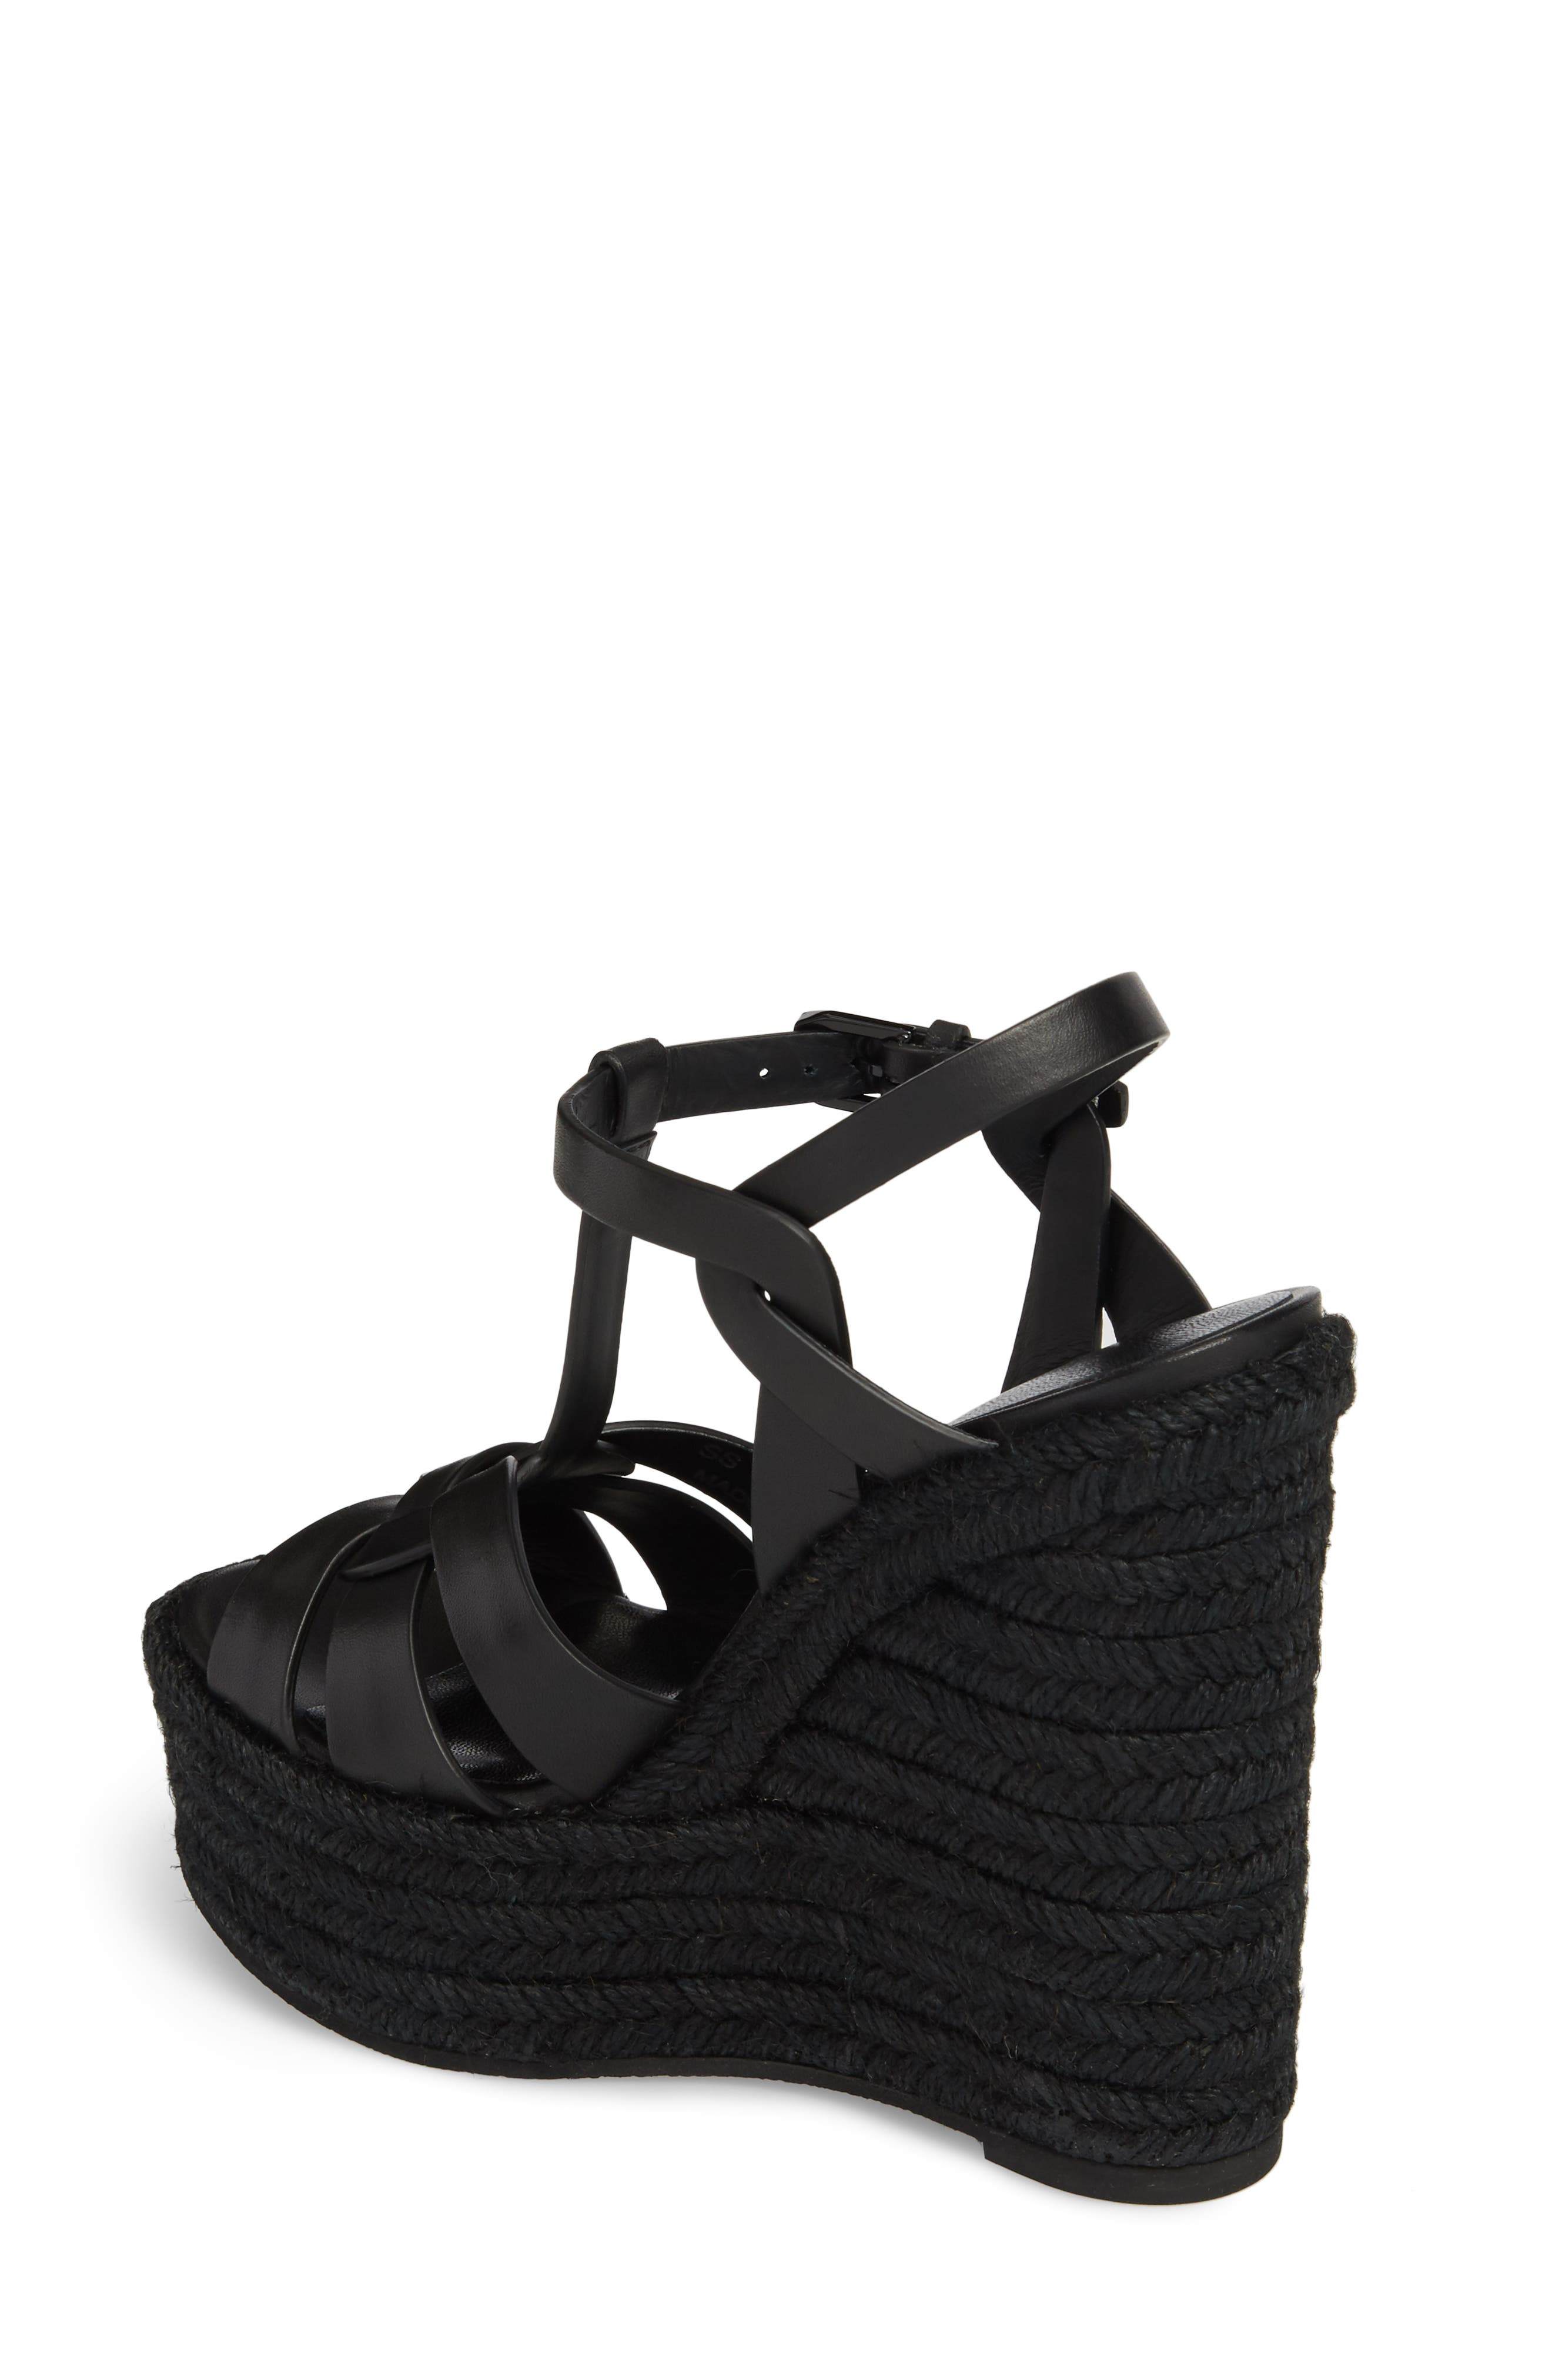 SAINT LAURENT, Tribute Espadrille Wedge, Alternate thumbnail 2, color, BLACK